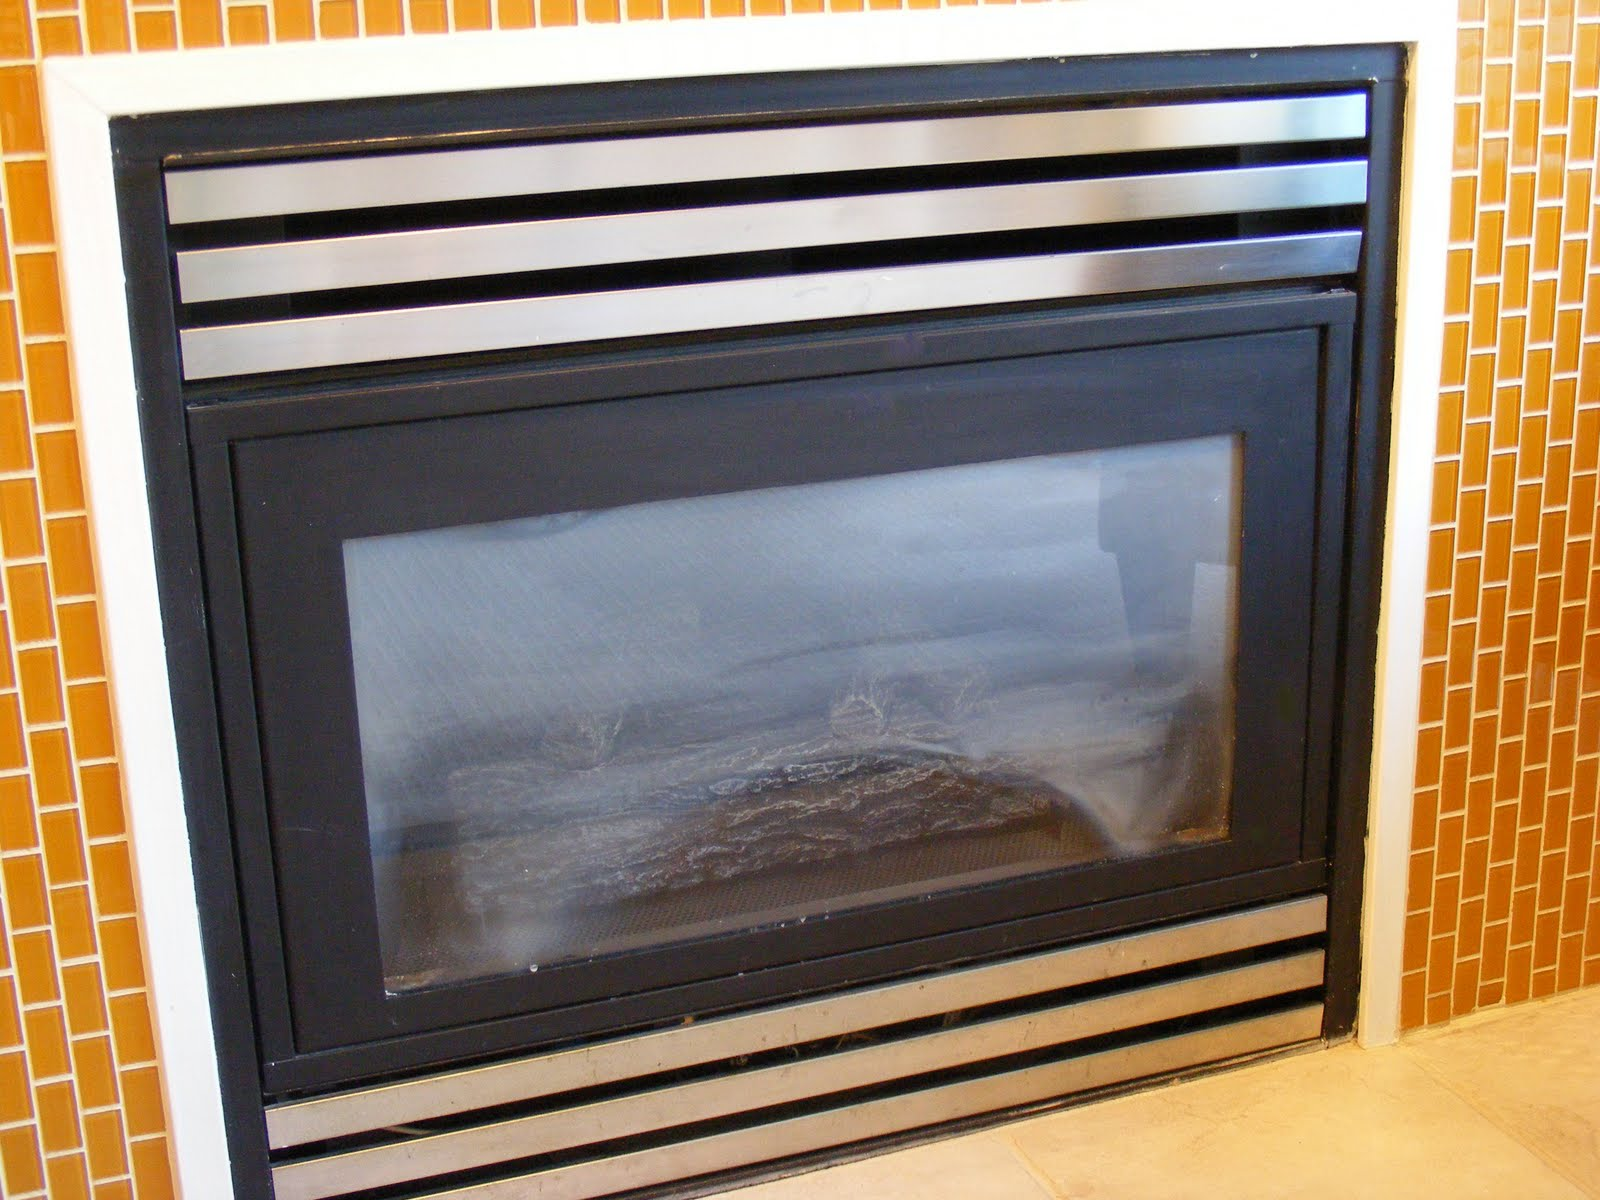 Cleaning A Fireplace Dirty Glass Other Maintenance Items Mygasfireplacerepair